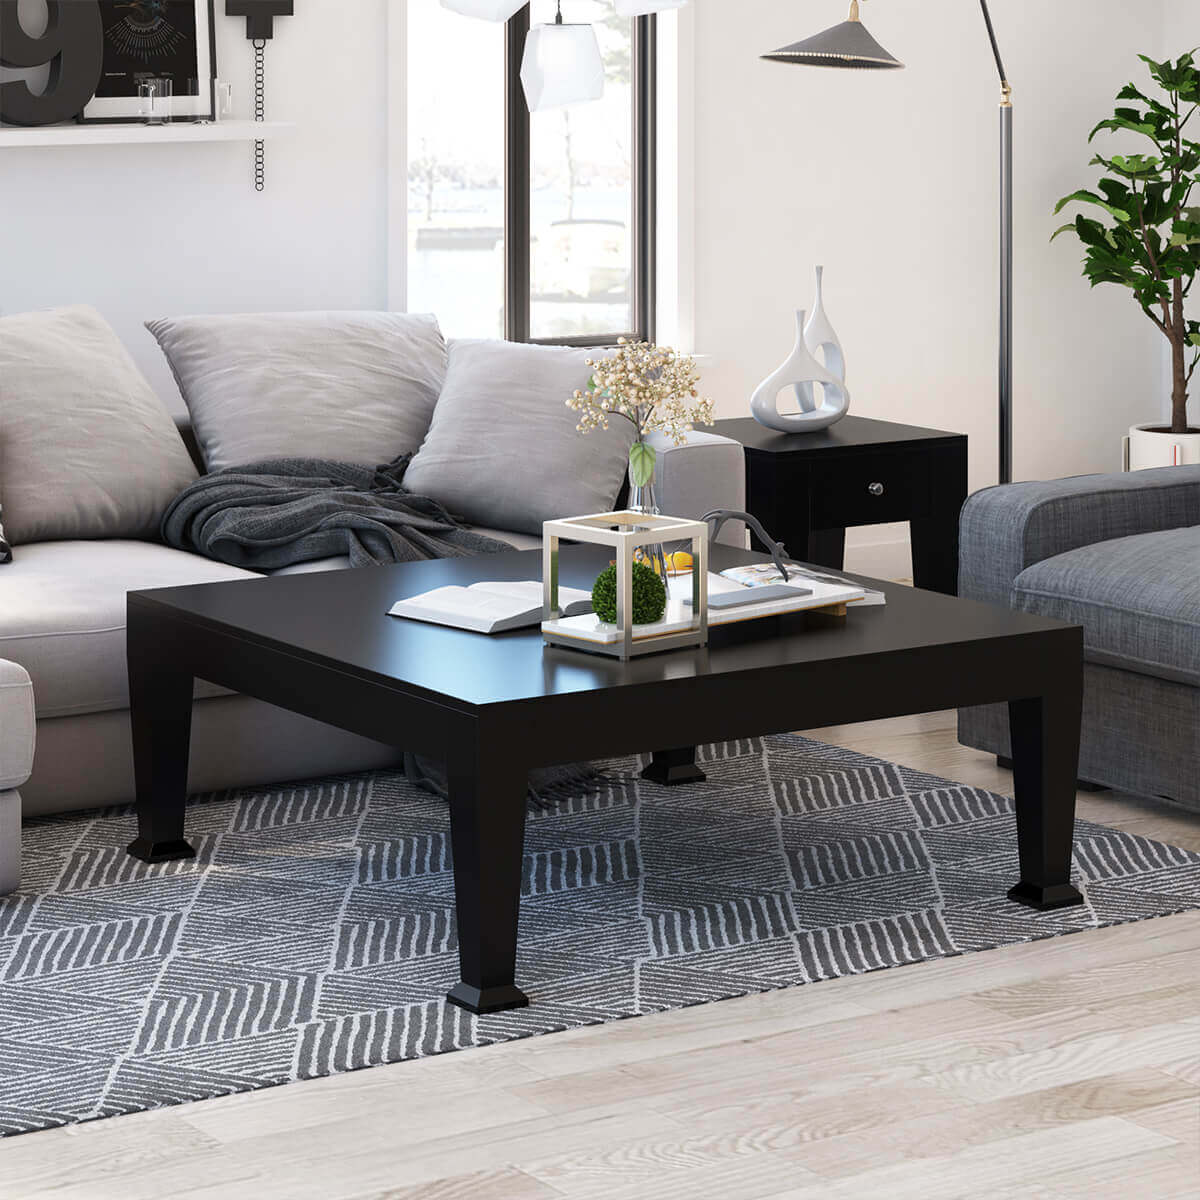 Rustic Coffee Table: Rustic Solid Wood Black Large Square Coffee Table Living